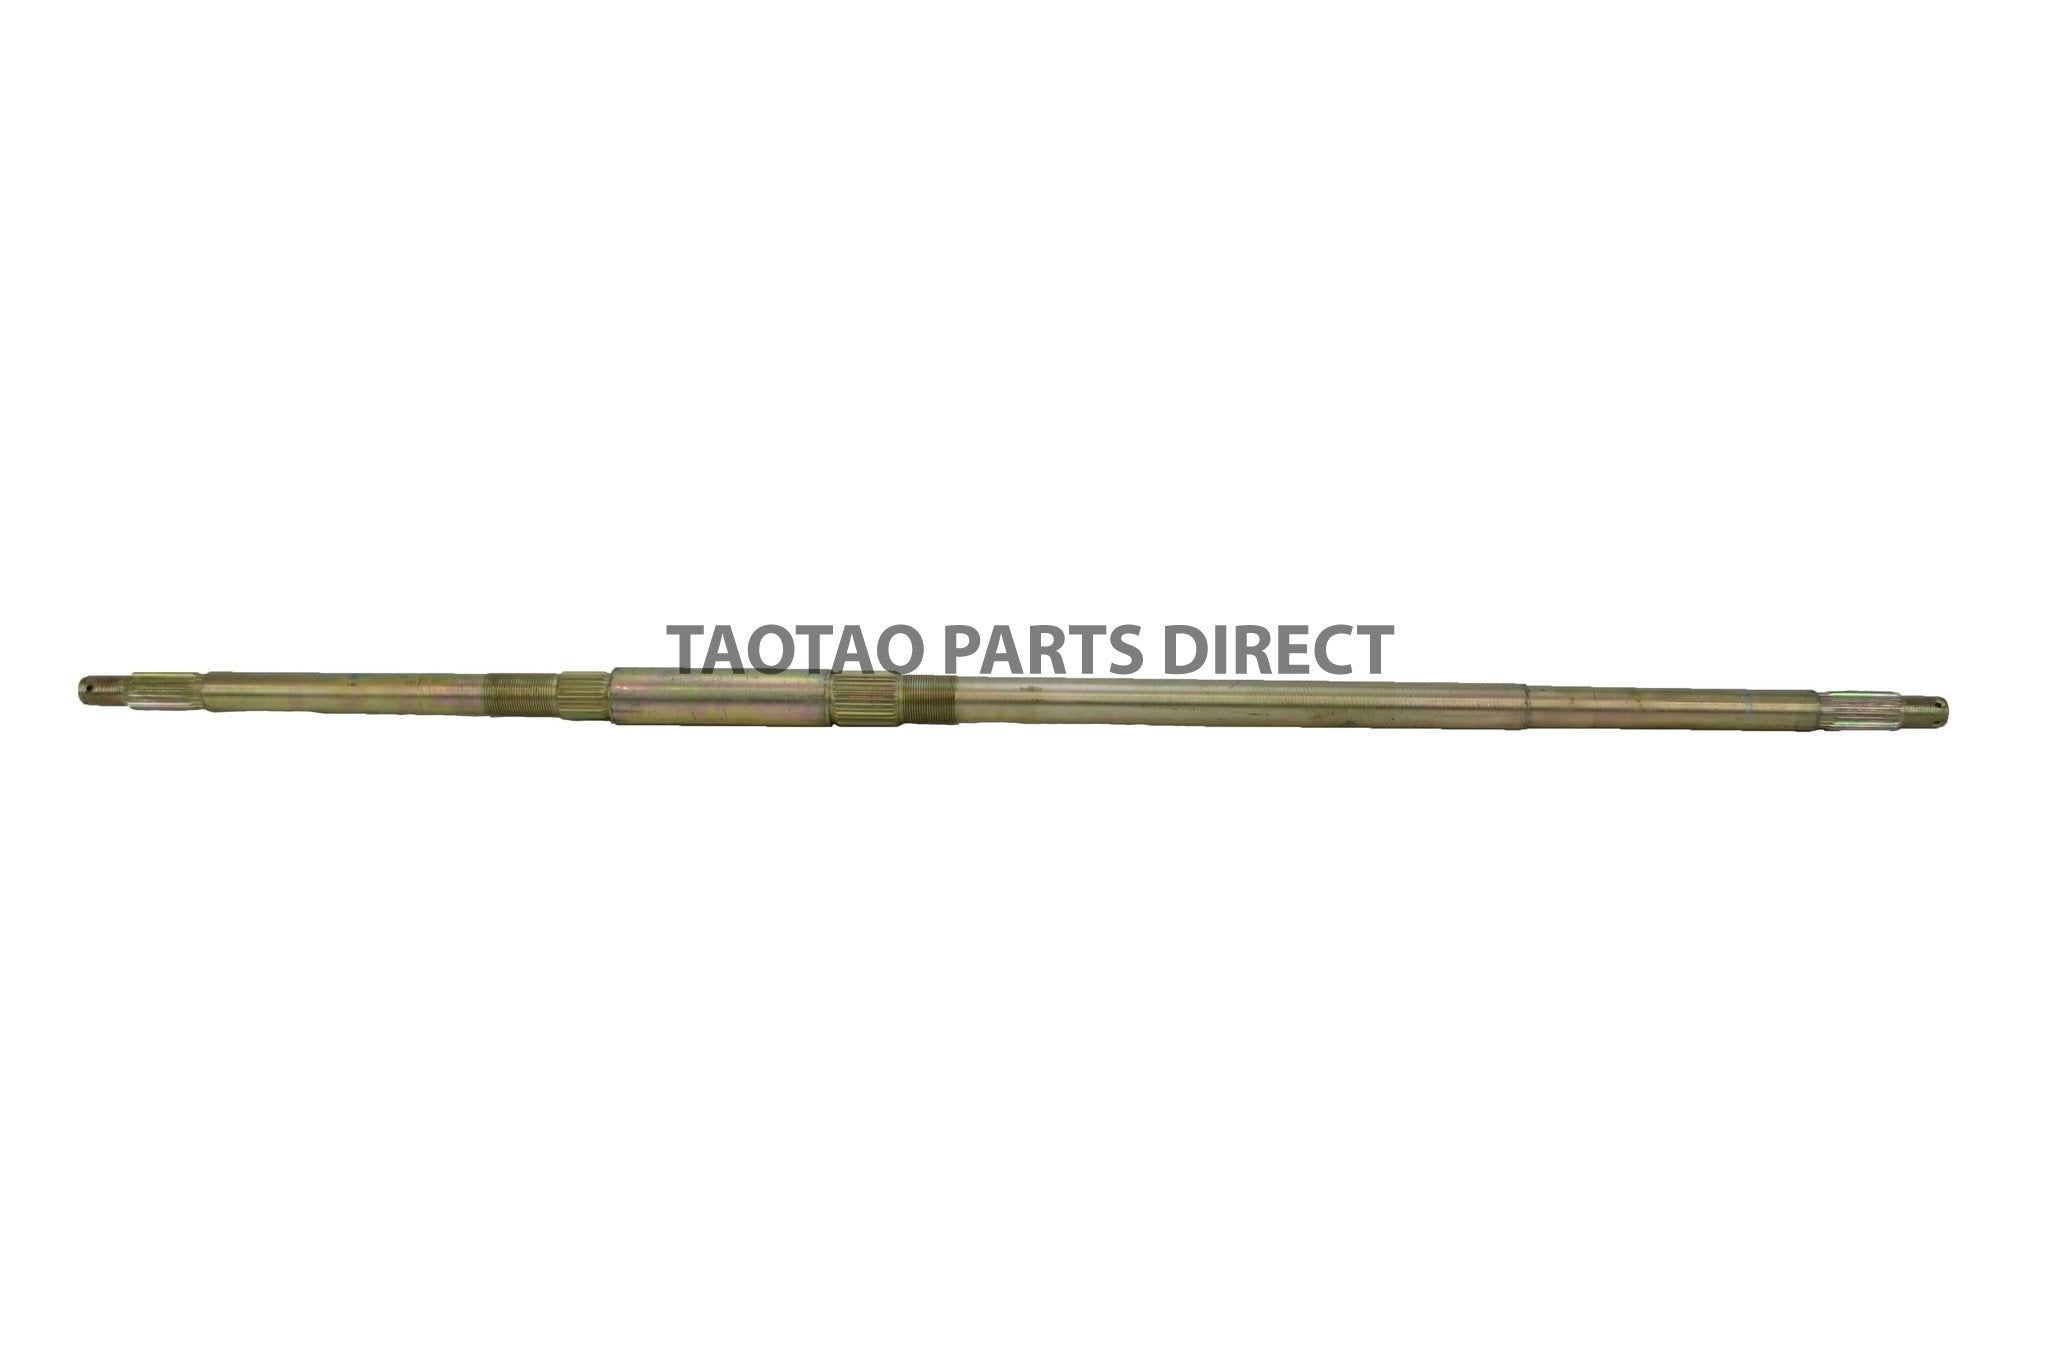 ATK125A Rear Axle - TaoTaoPartsDirect.com